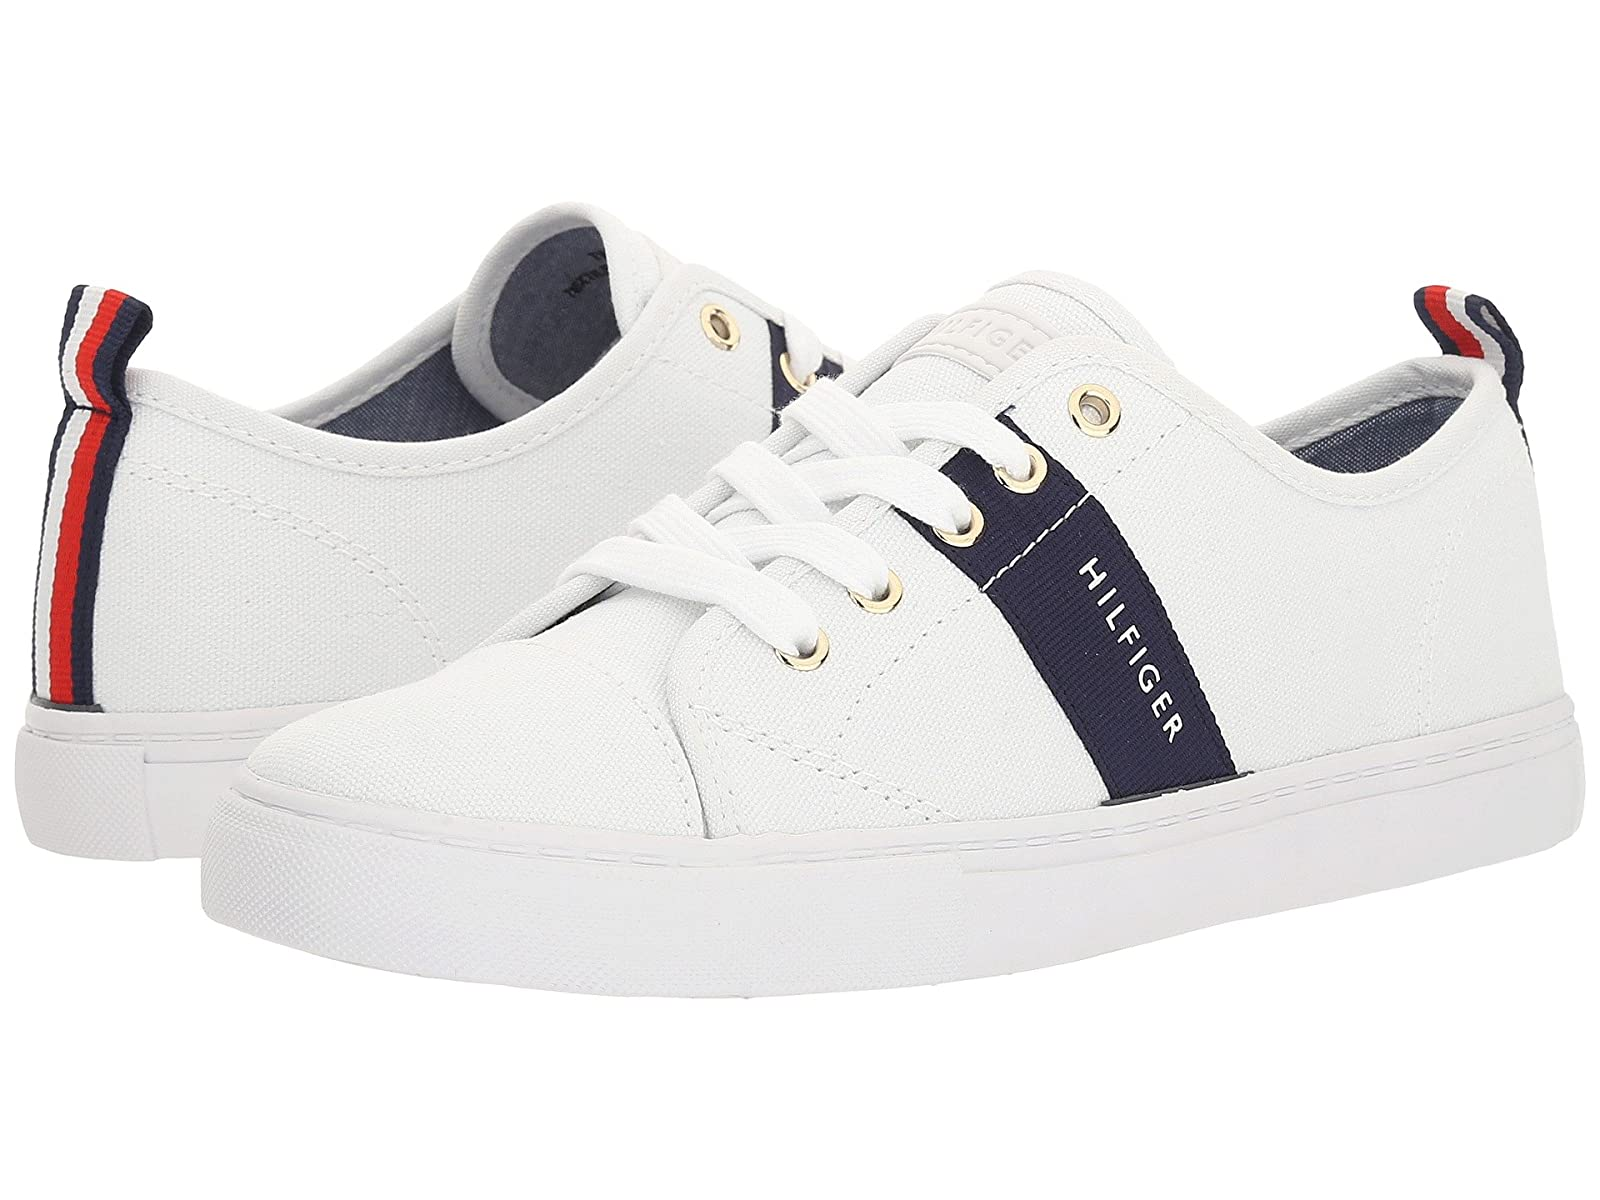 Tommy Hilfiger Lancer 2Cheap and distinctive eye-catching shoes